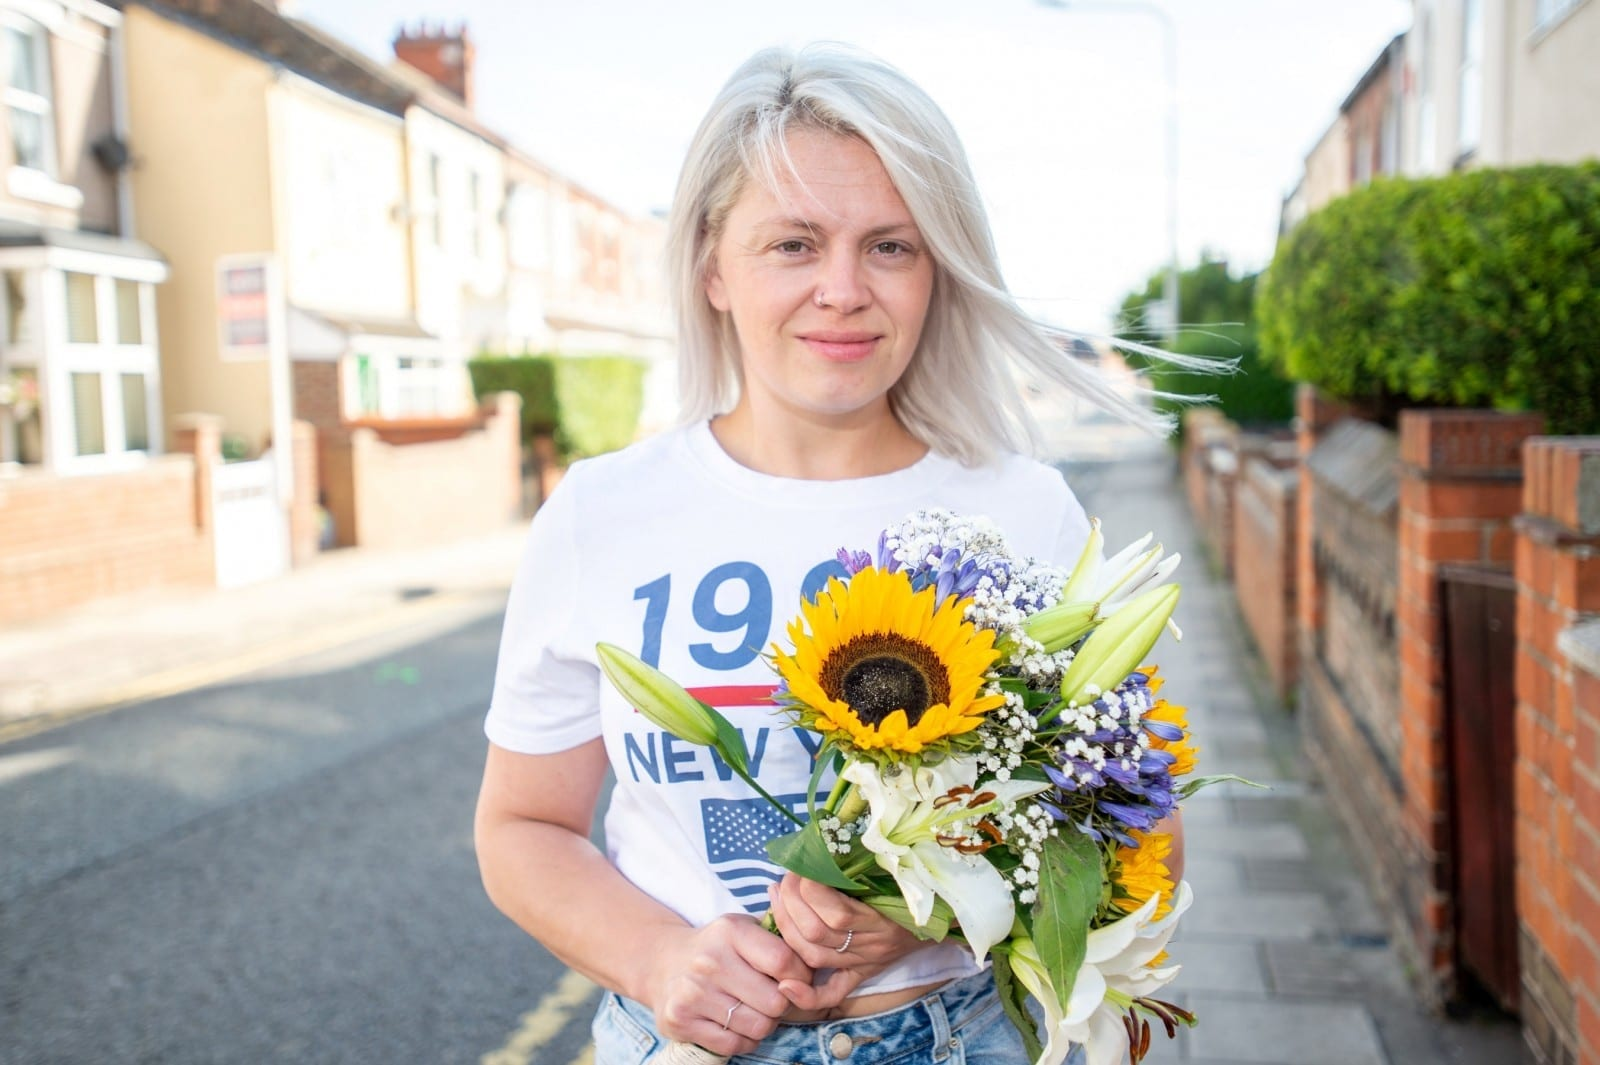 Grieving Daughter Sparks Random Acts Of Kindness To Keep Her Late Mother's Memory Alive - By Giving Out Bunches Of Flowers To Strangers